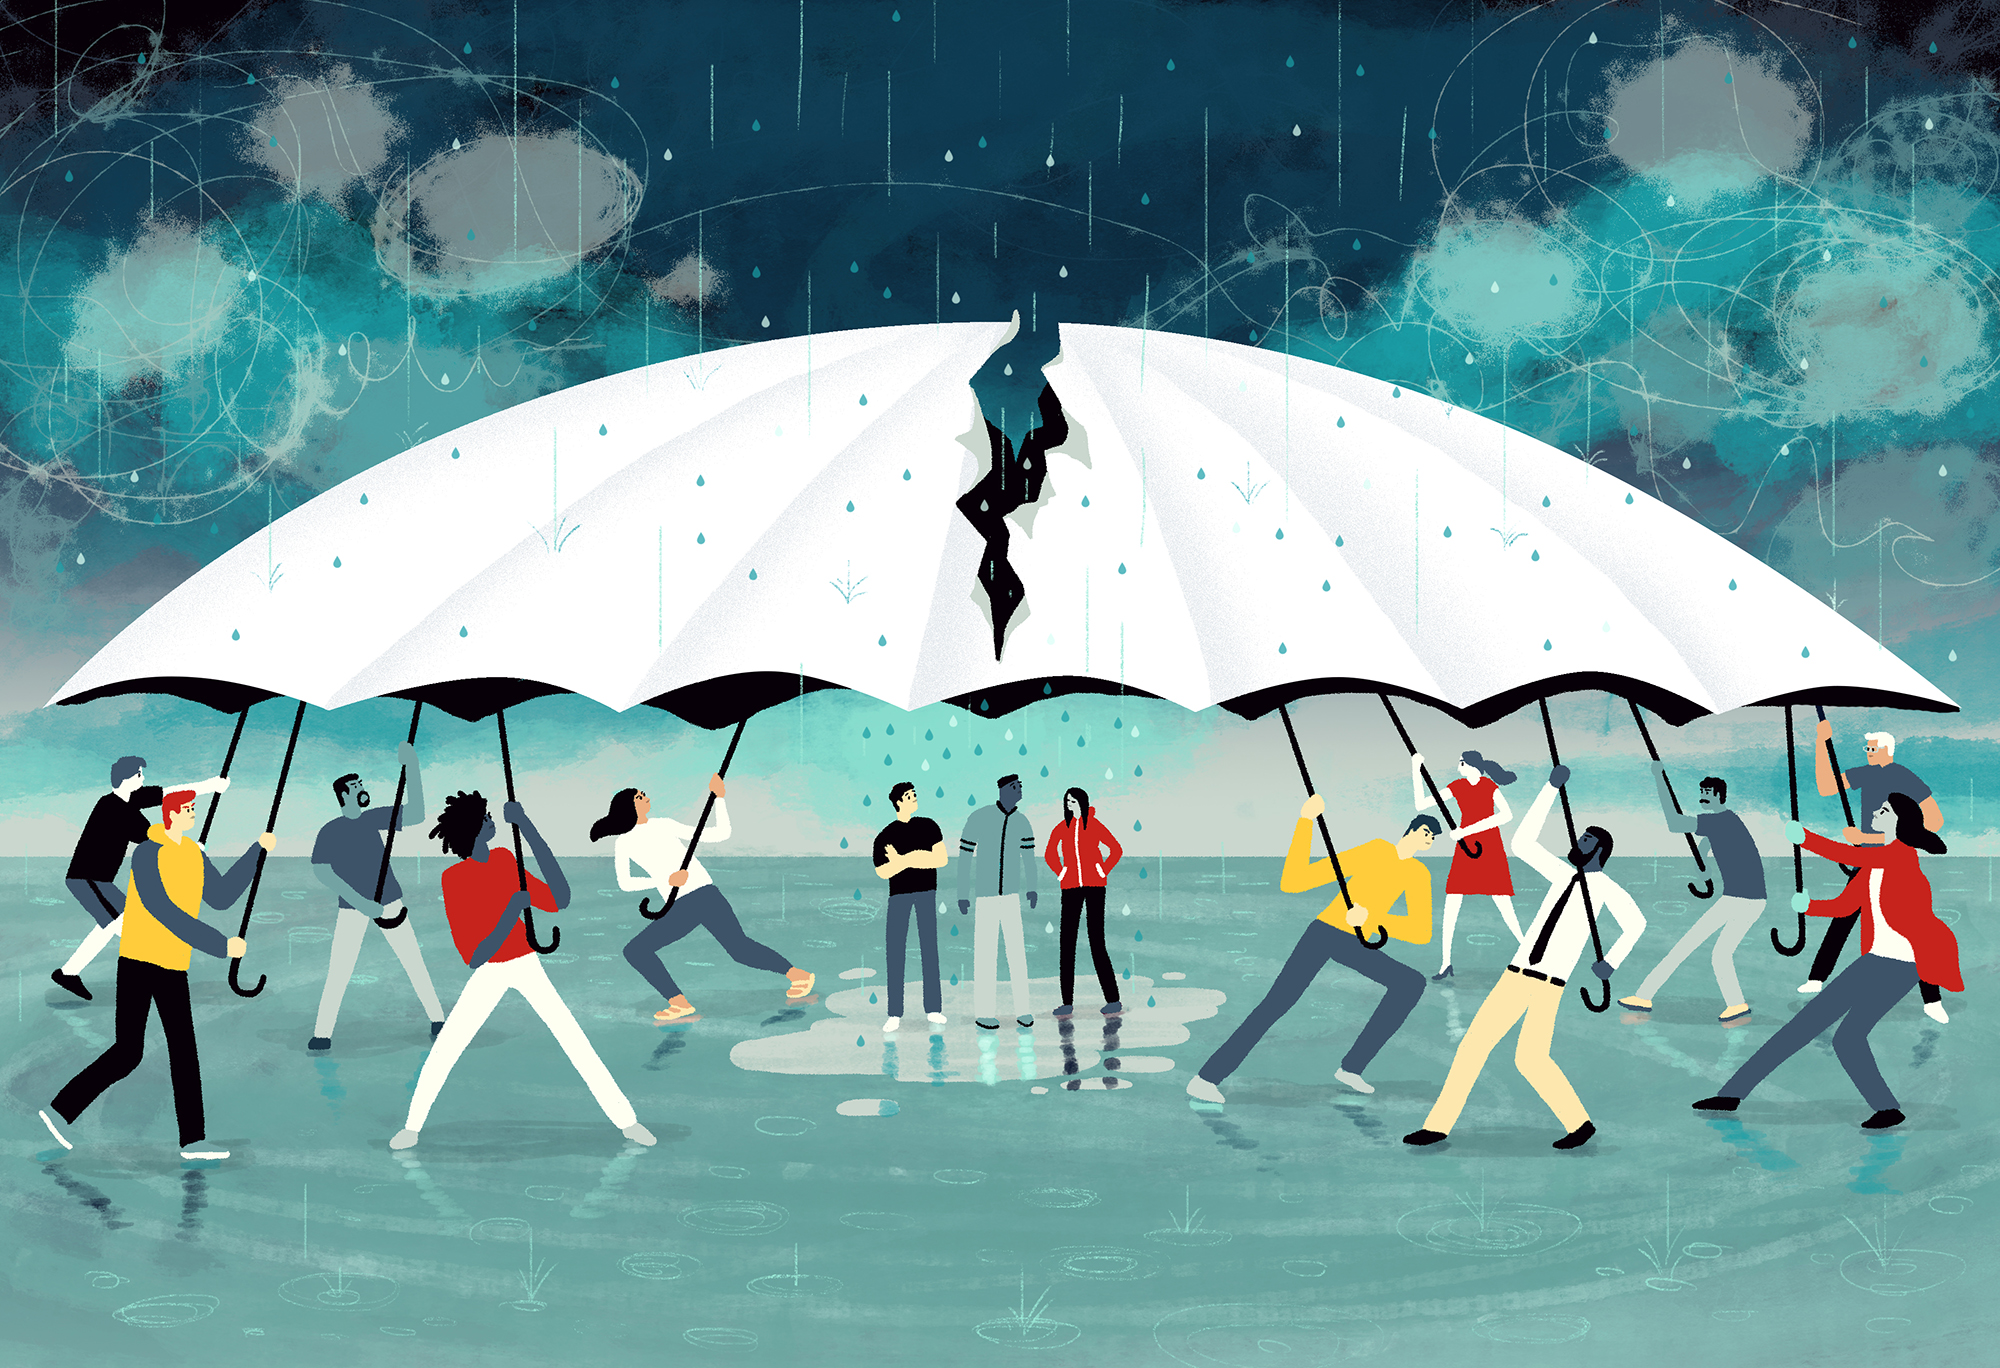 People battling over a giant umbrella, people in the middle are exposed to rain